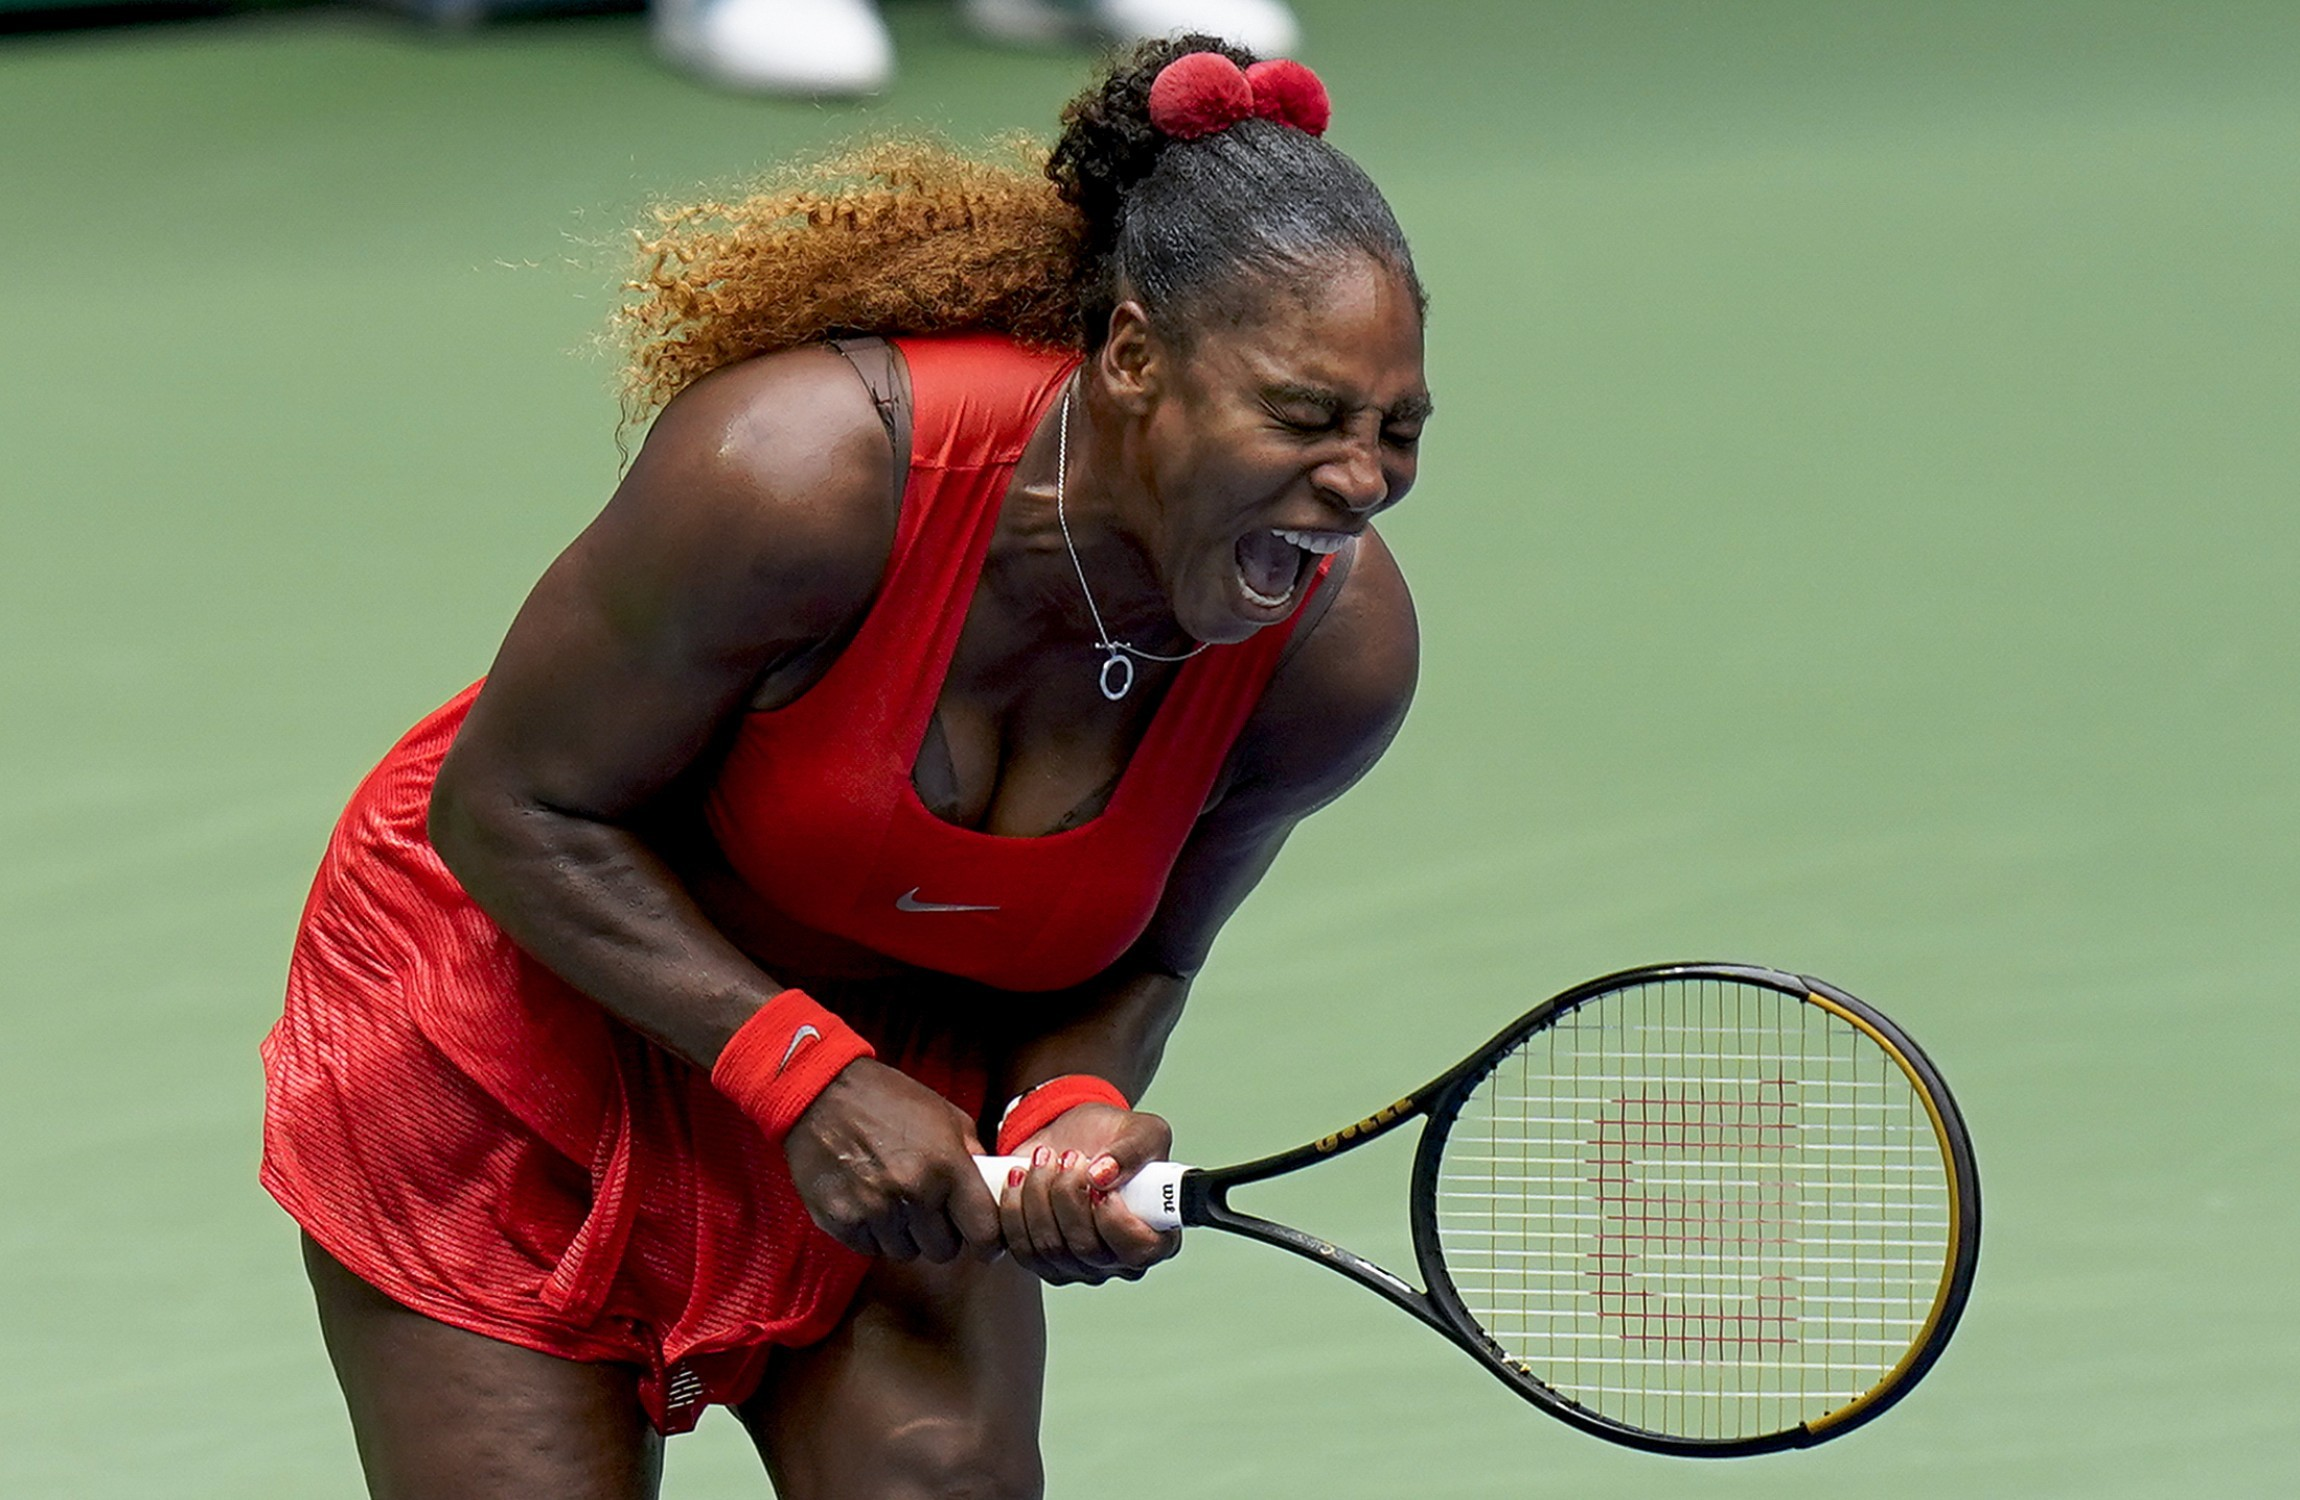 US Open: Azarenka clobbers Mertens to set up Serena showdown in semis